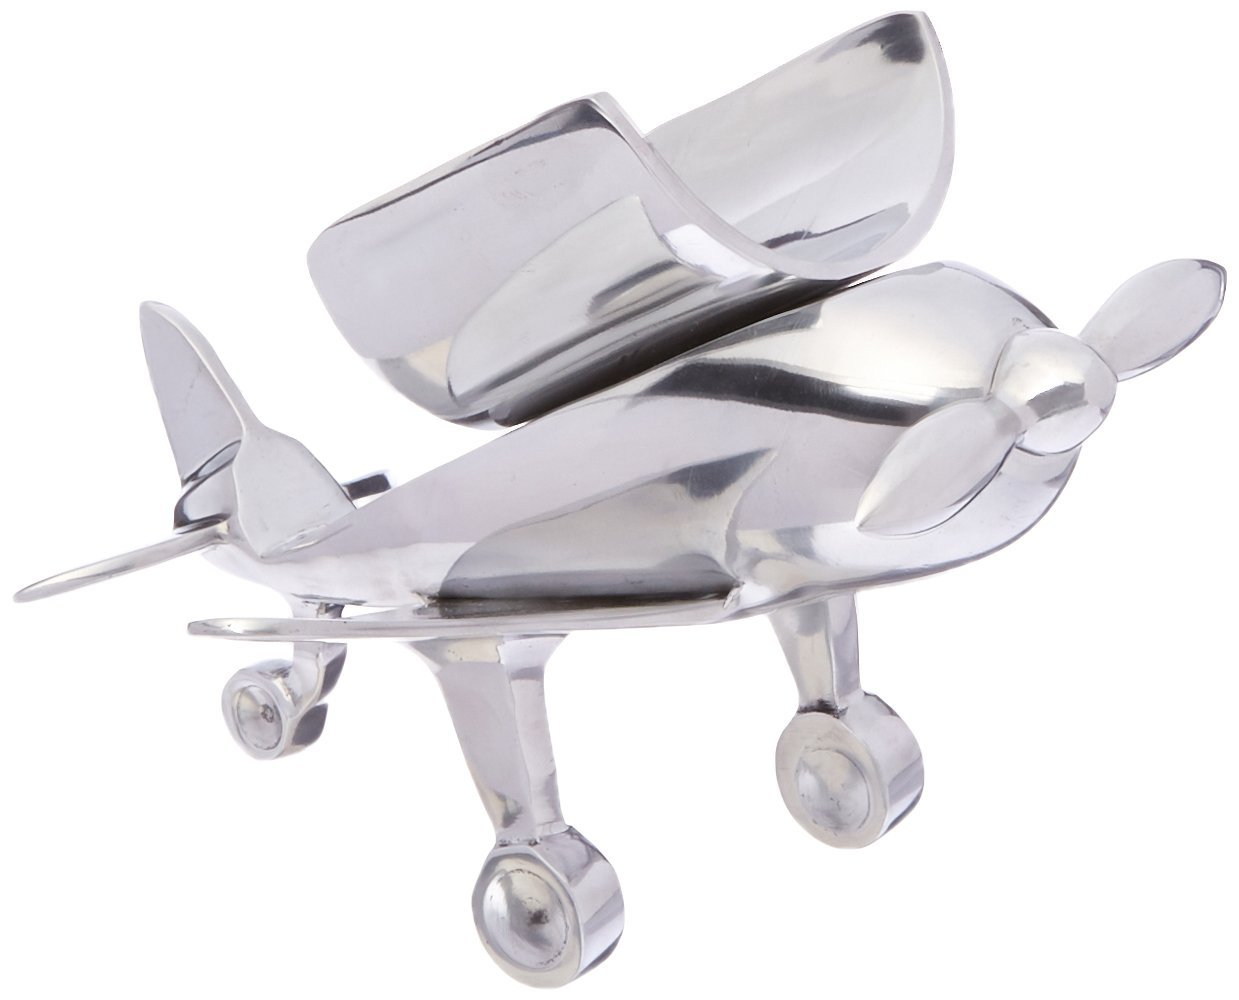 GODINGER SILVER ART Airplane Bottle Holder, Silver by Godinger